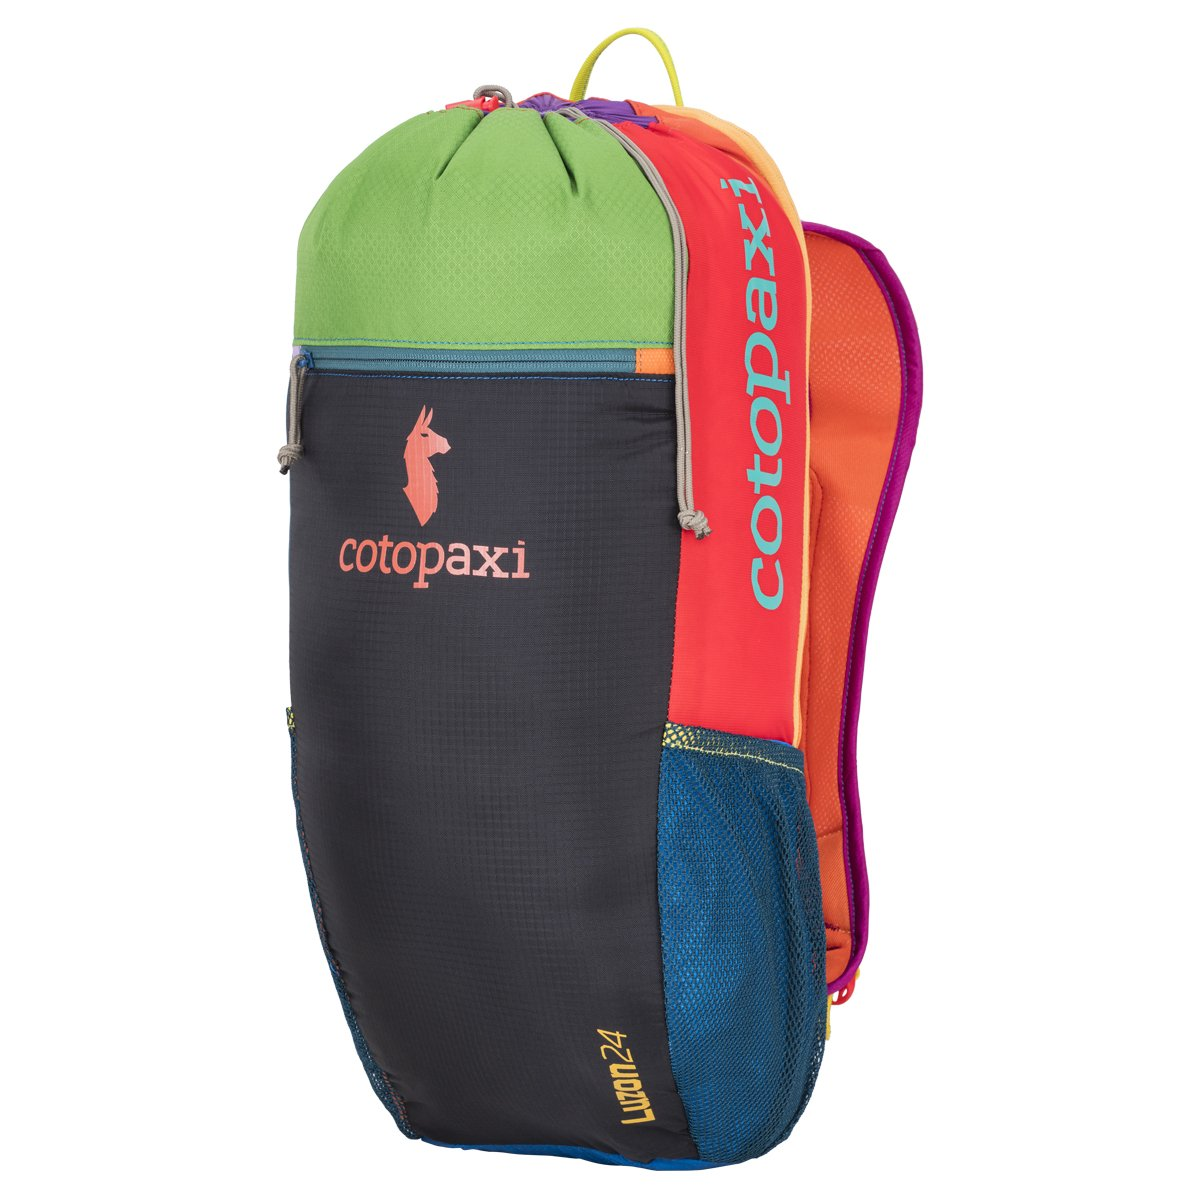 Cotopaxi Luzon 24L - DEL DIA (One of a Kind) - Durable Lightweight Nylon Hiking Packable Daypack Backpack hot sale